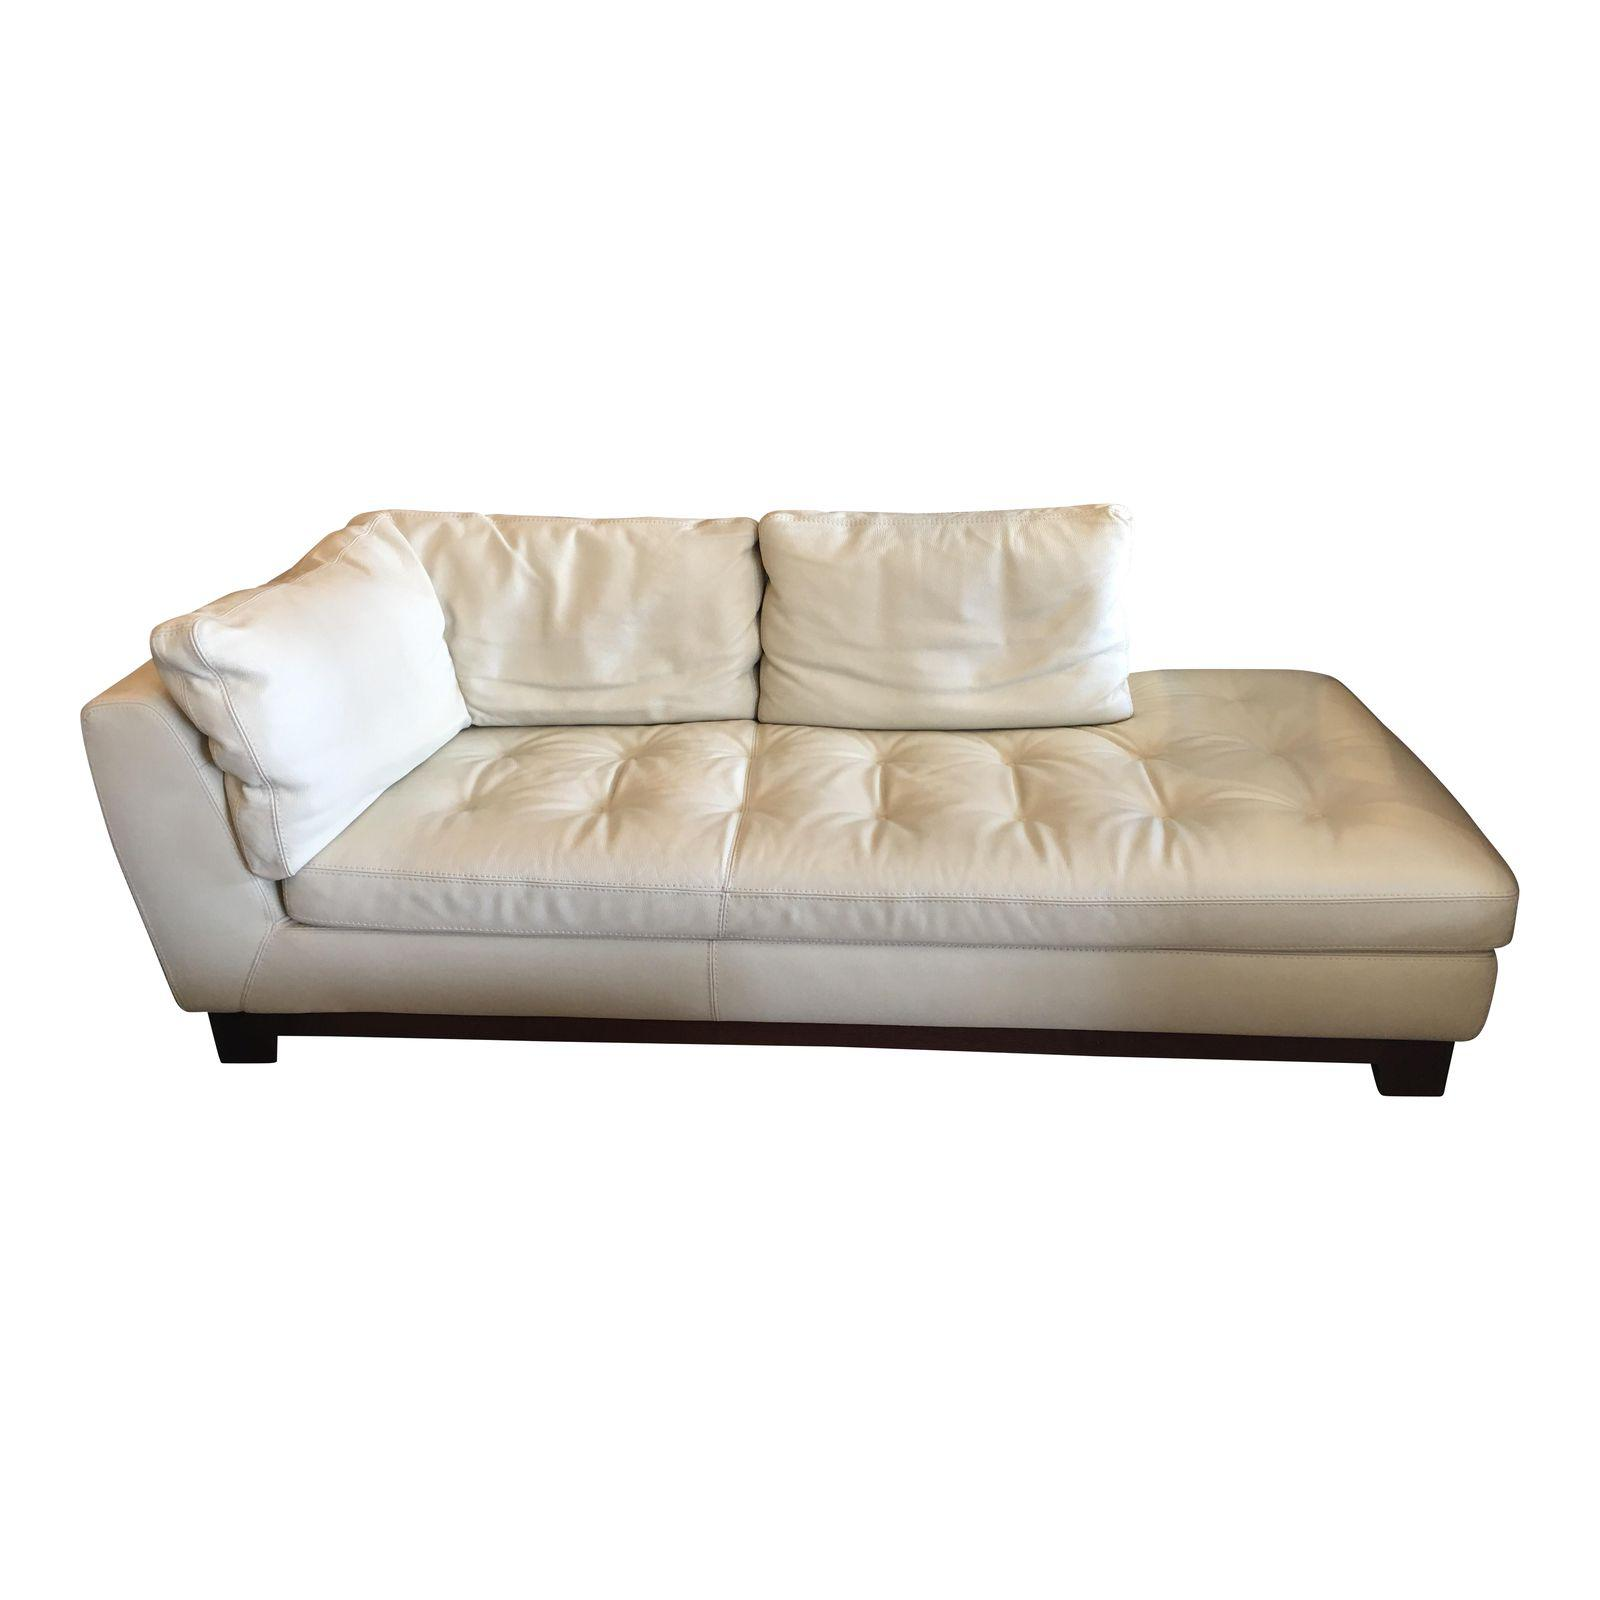 Chaises Roche Bobois Soldes Roche Bobois White Leather Chaise Sofa Design Plus Gallery